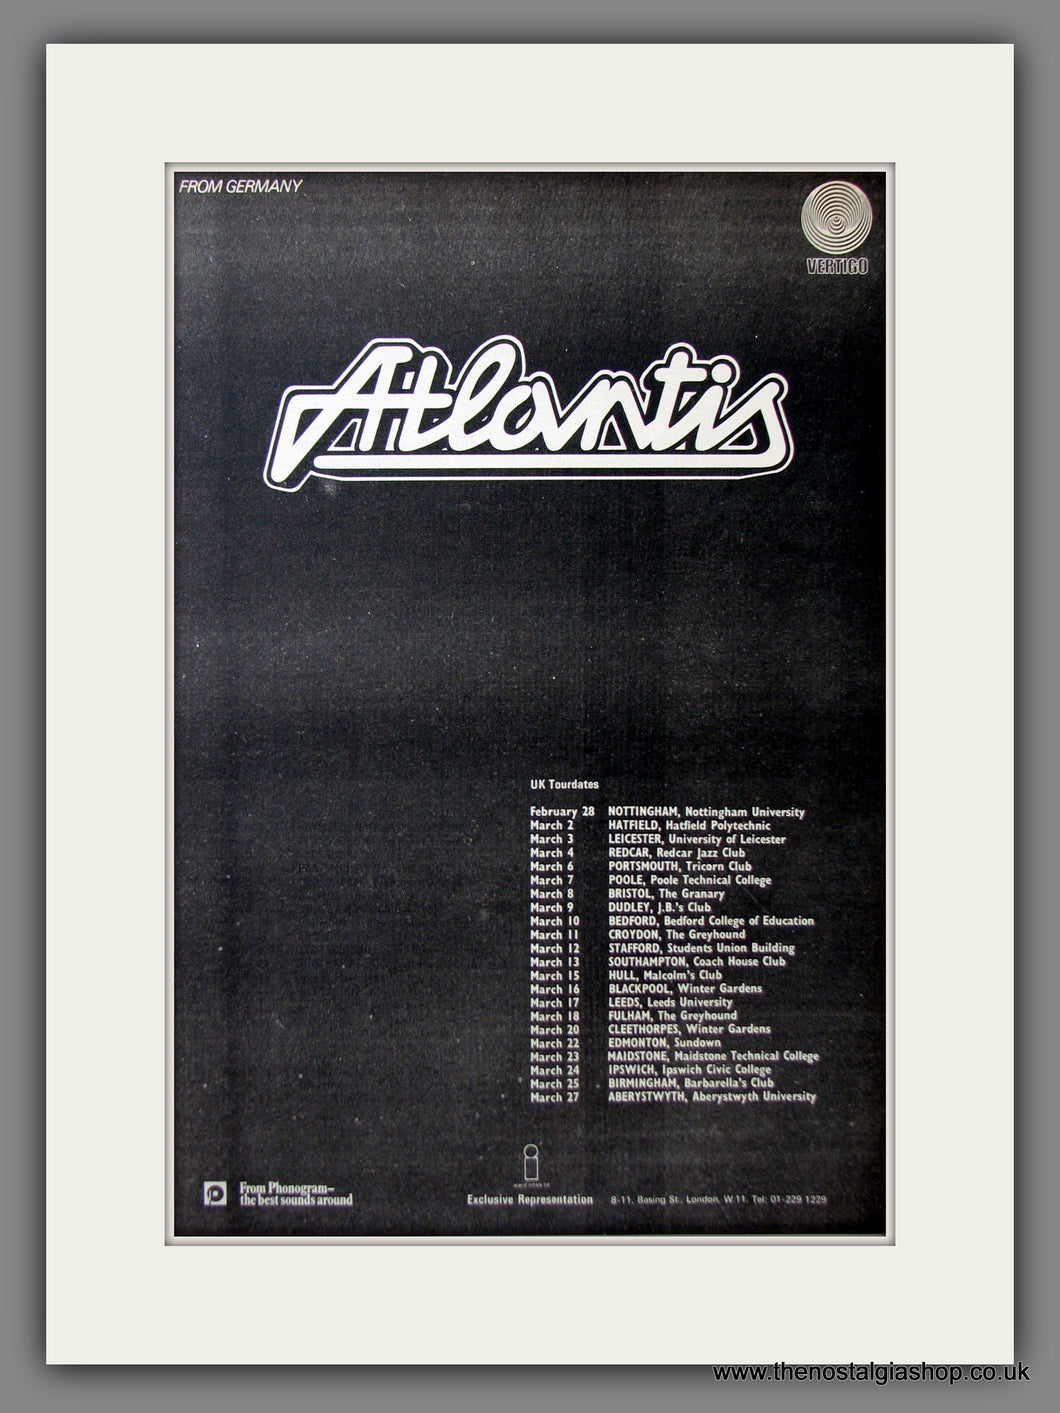 Atlantis, UK Tour Dates. Original Advert 1973 (ref AD11634)